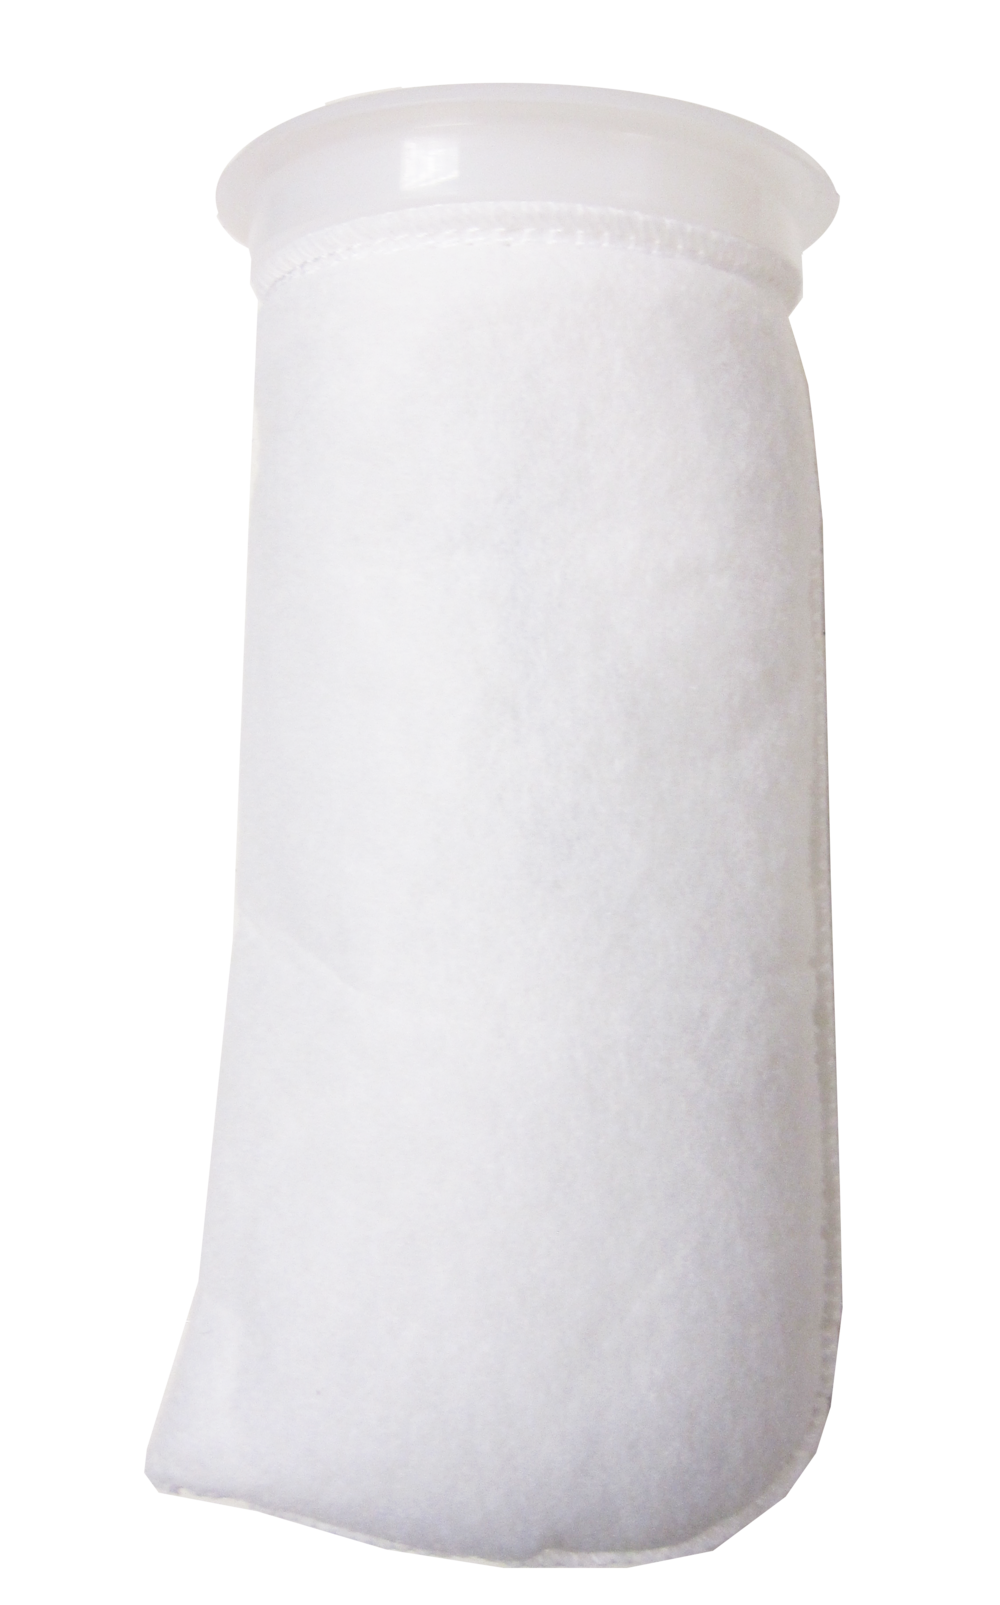 "4"" Round 200 Micron Filter Sock   SKU#: AM41008  UPC#: 7-49729-41008-  Product Dimension: 4""x4""x10.5""  Master Carton Dimension: 20x14x10""  Master pack: 48pcs"